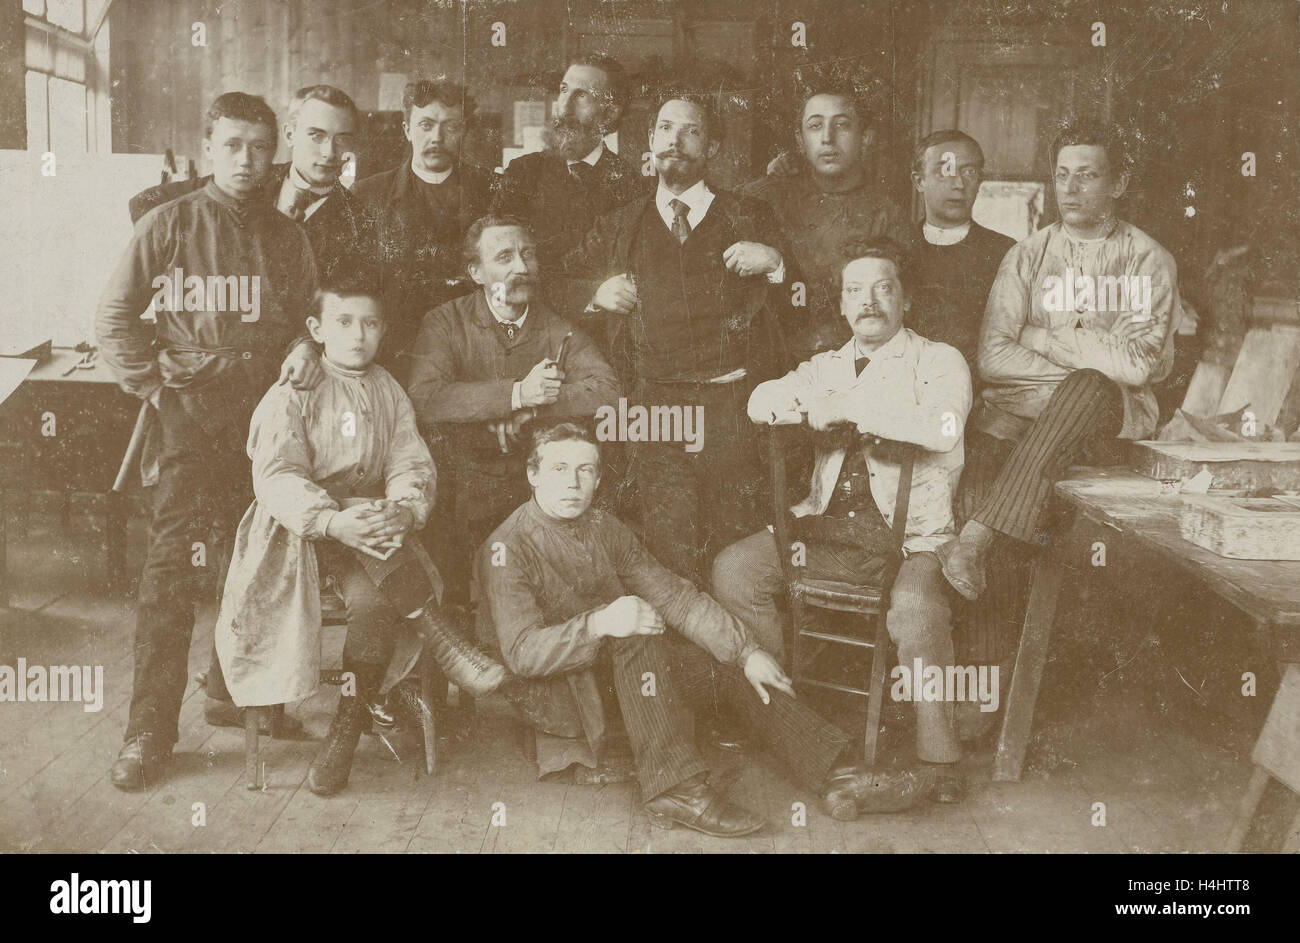 Group portrait employees lithographic printing, Anonymous, 1880 - 1910 - Stock Image